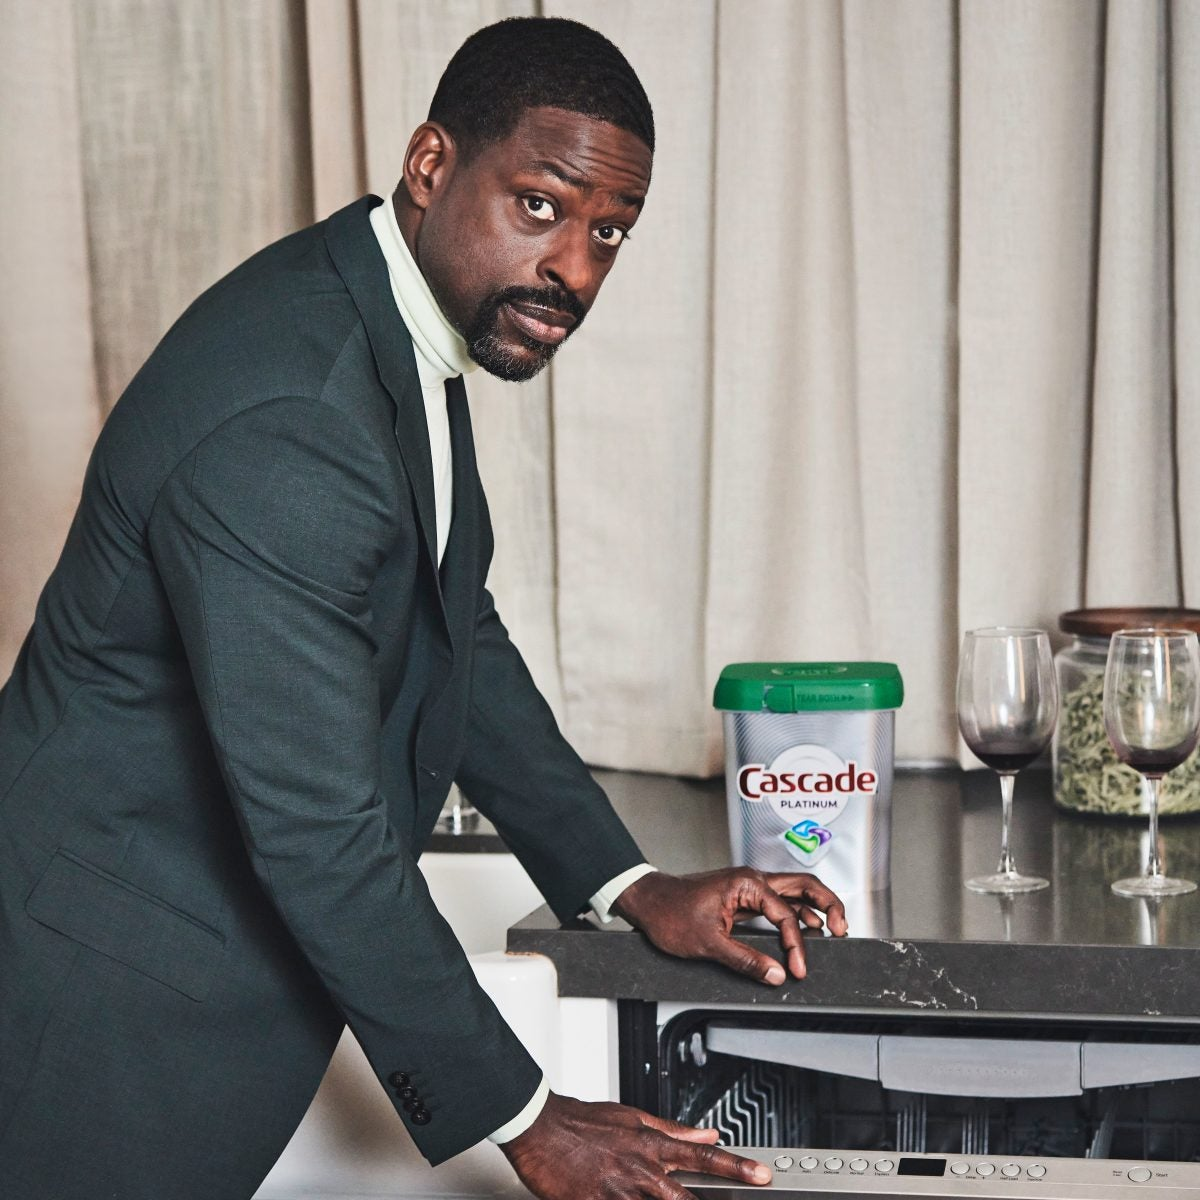 Sterling K. Brown On 'This Is Us' Ending And Shifting The Narrative About Black Fatherhood